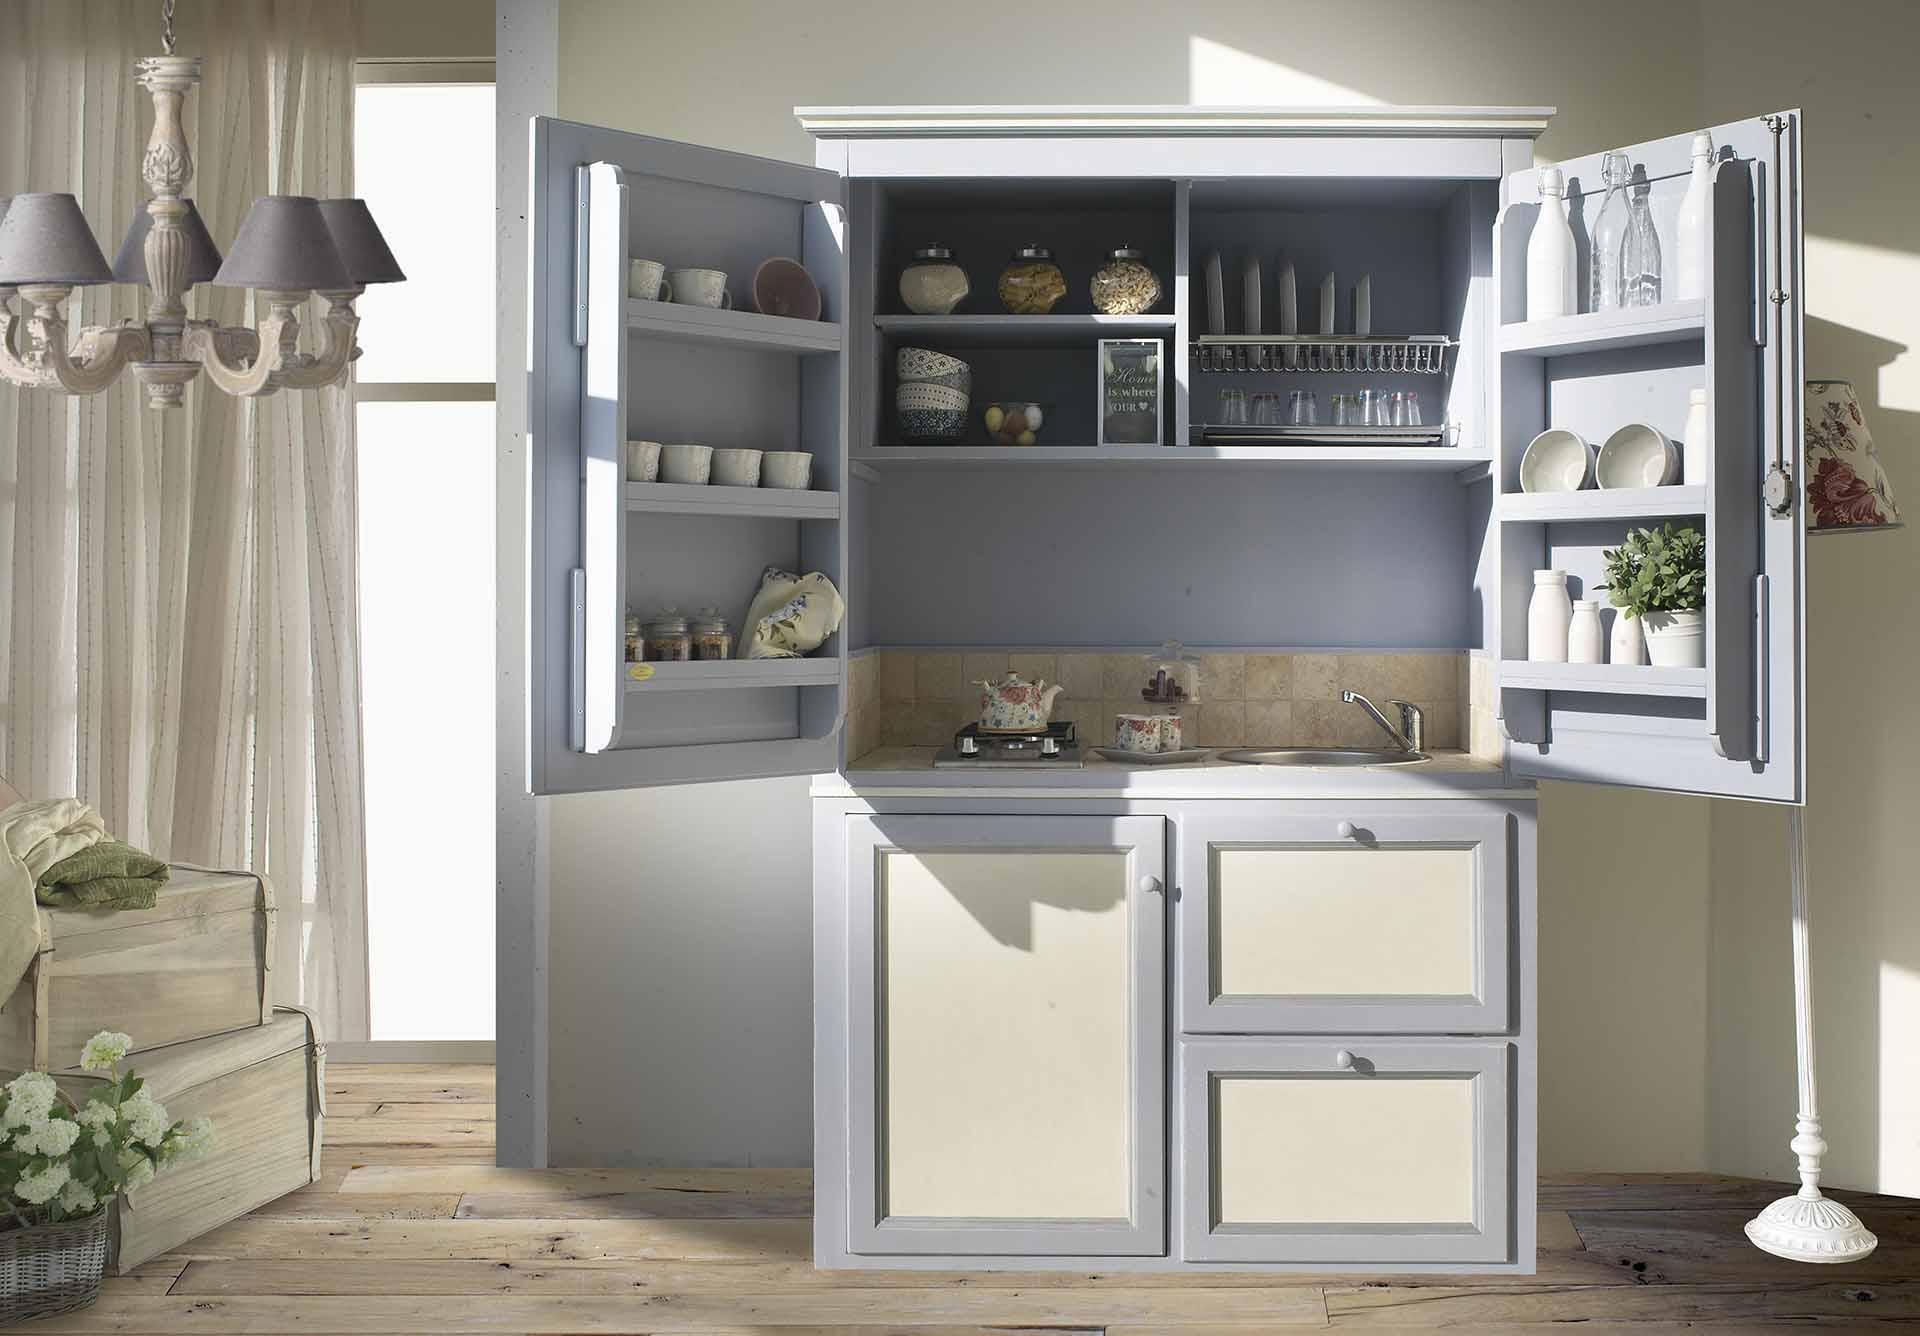 slide-mini-cucine-201611